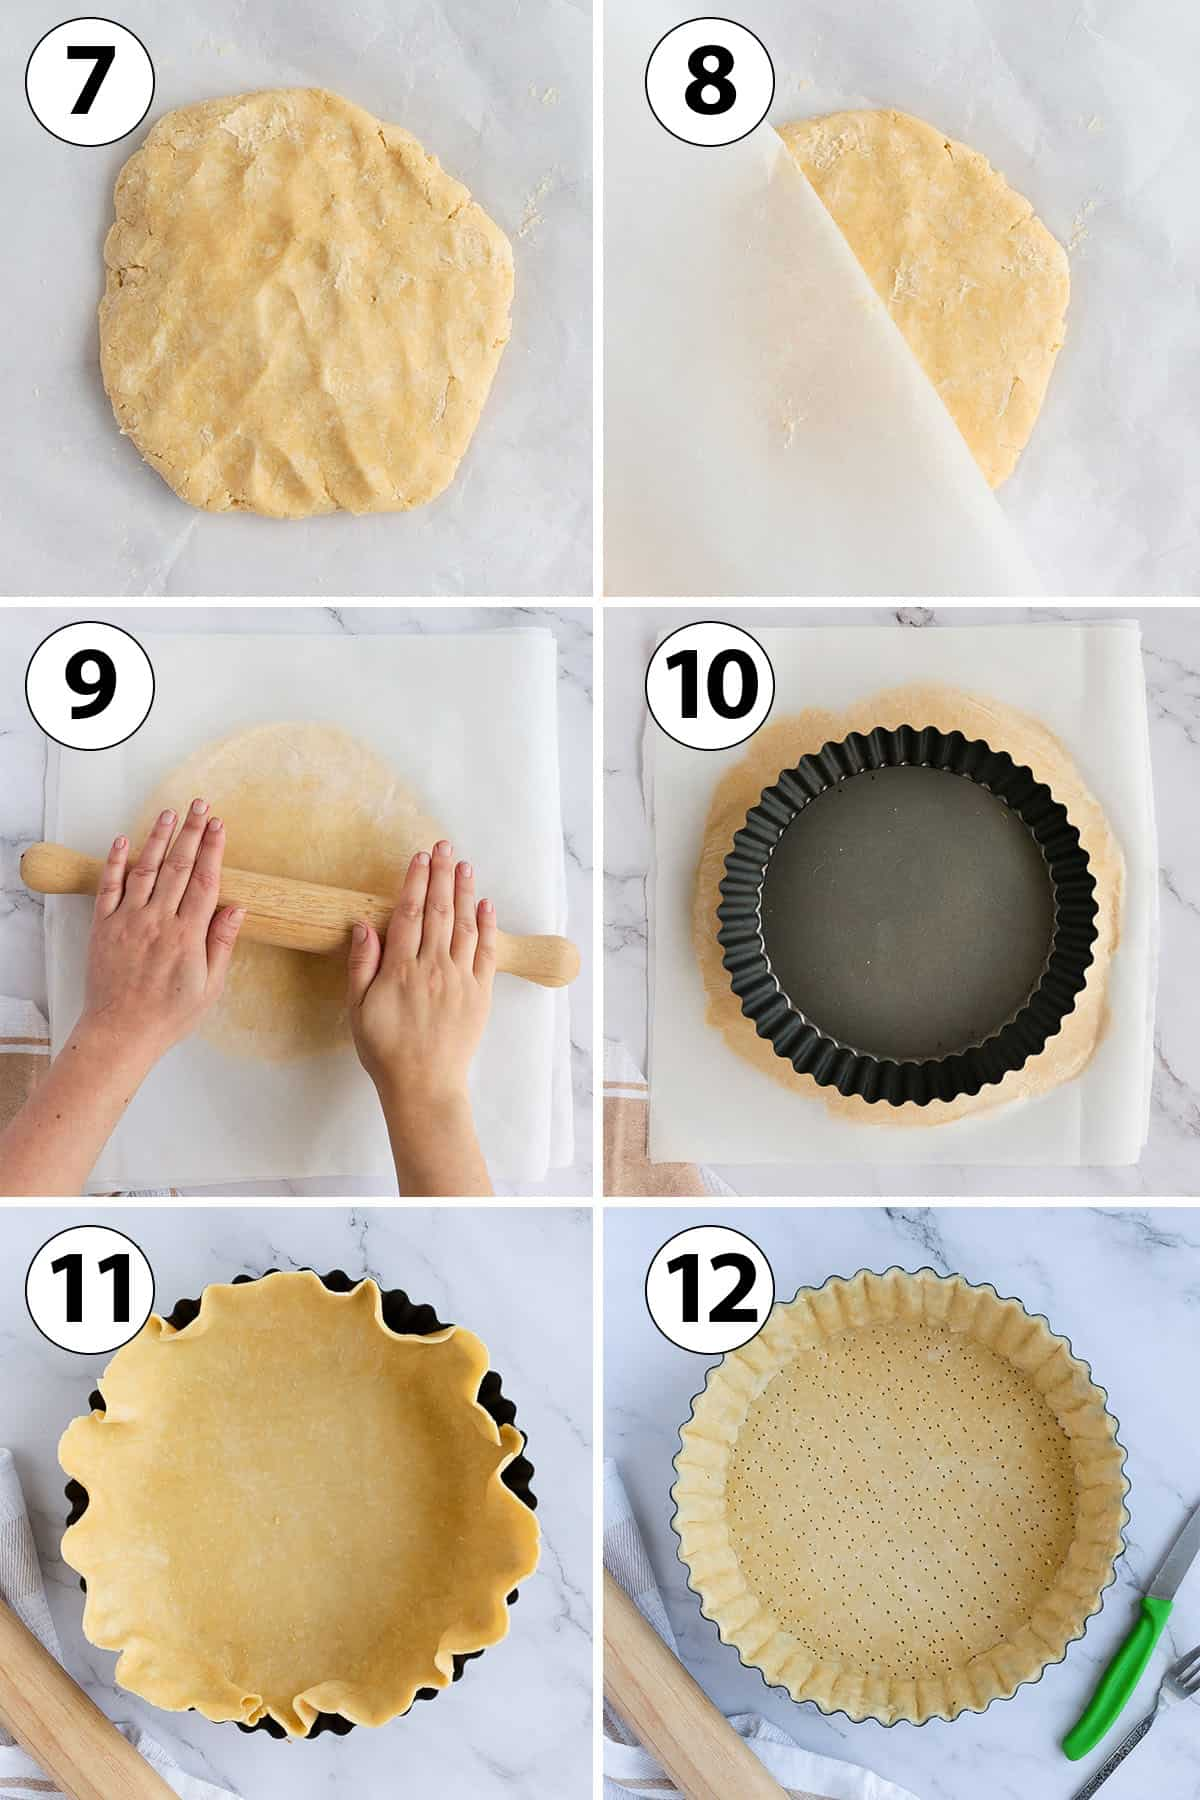 Process Shot: rolling the pastry and lining the tart pan